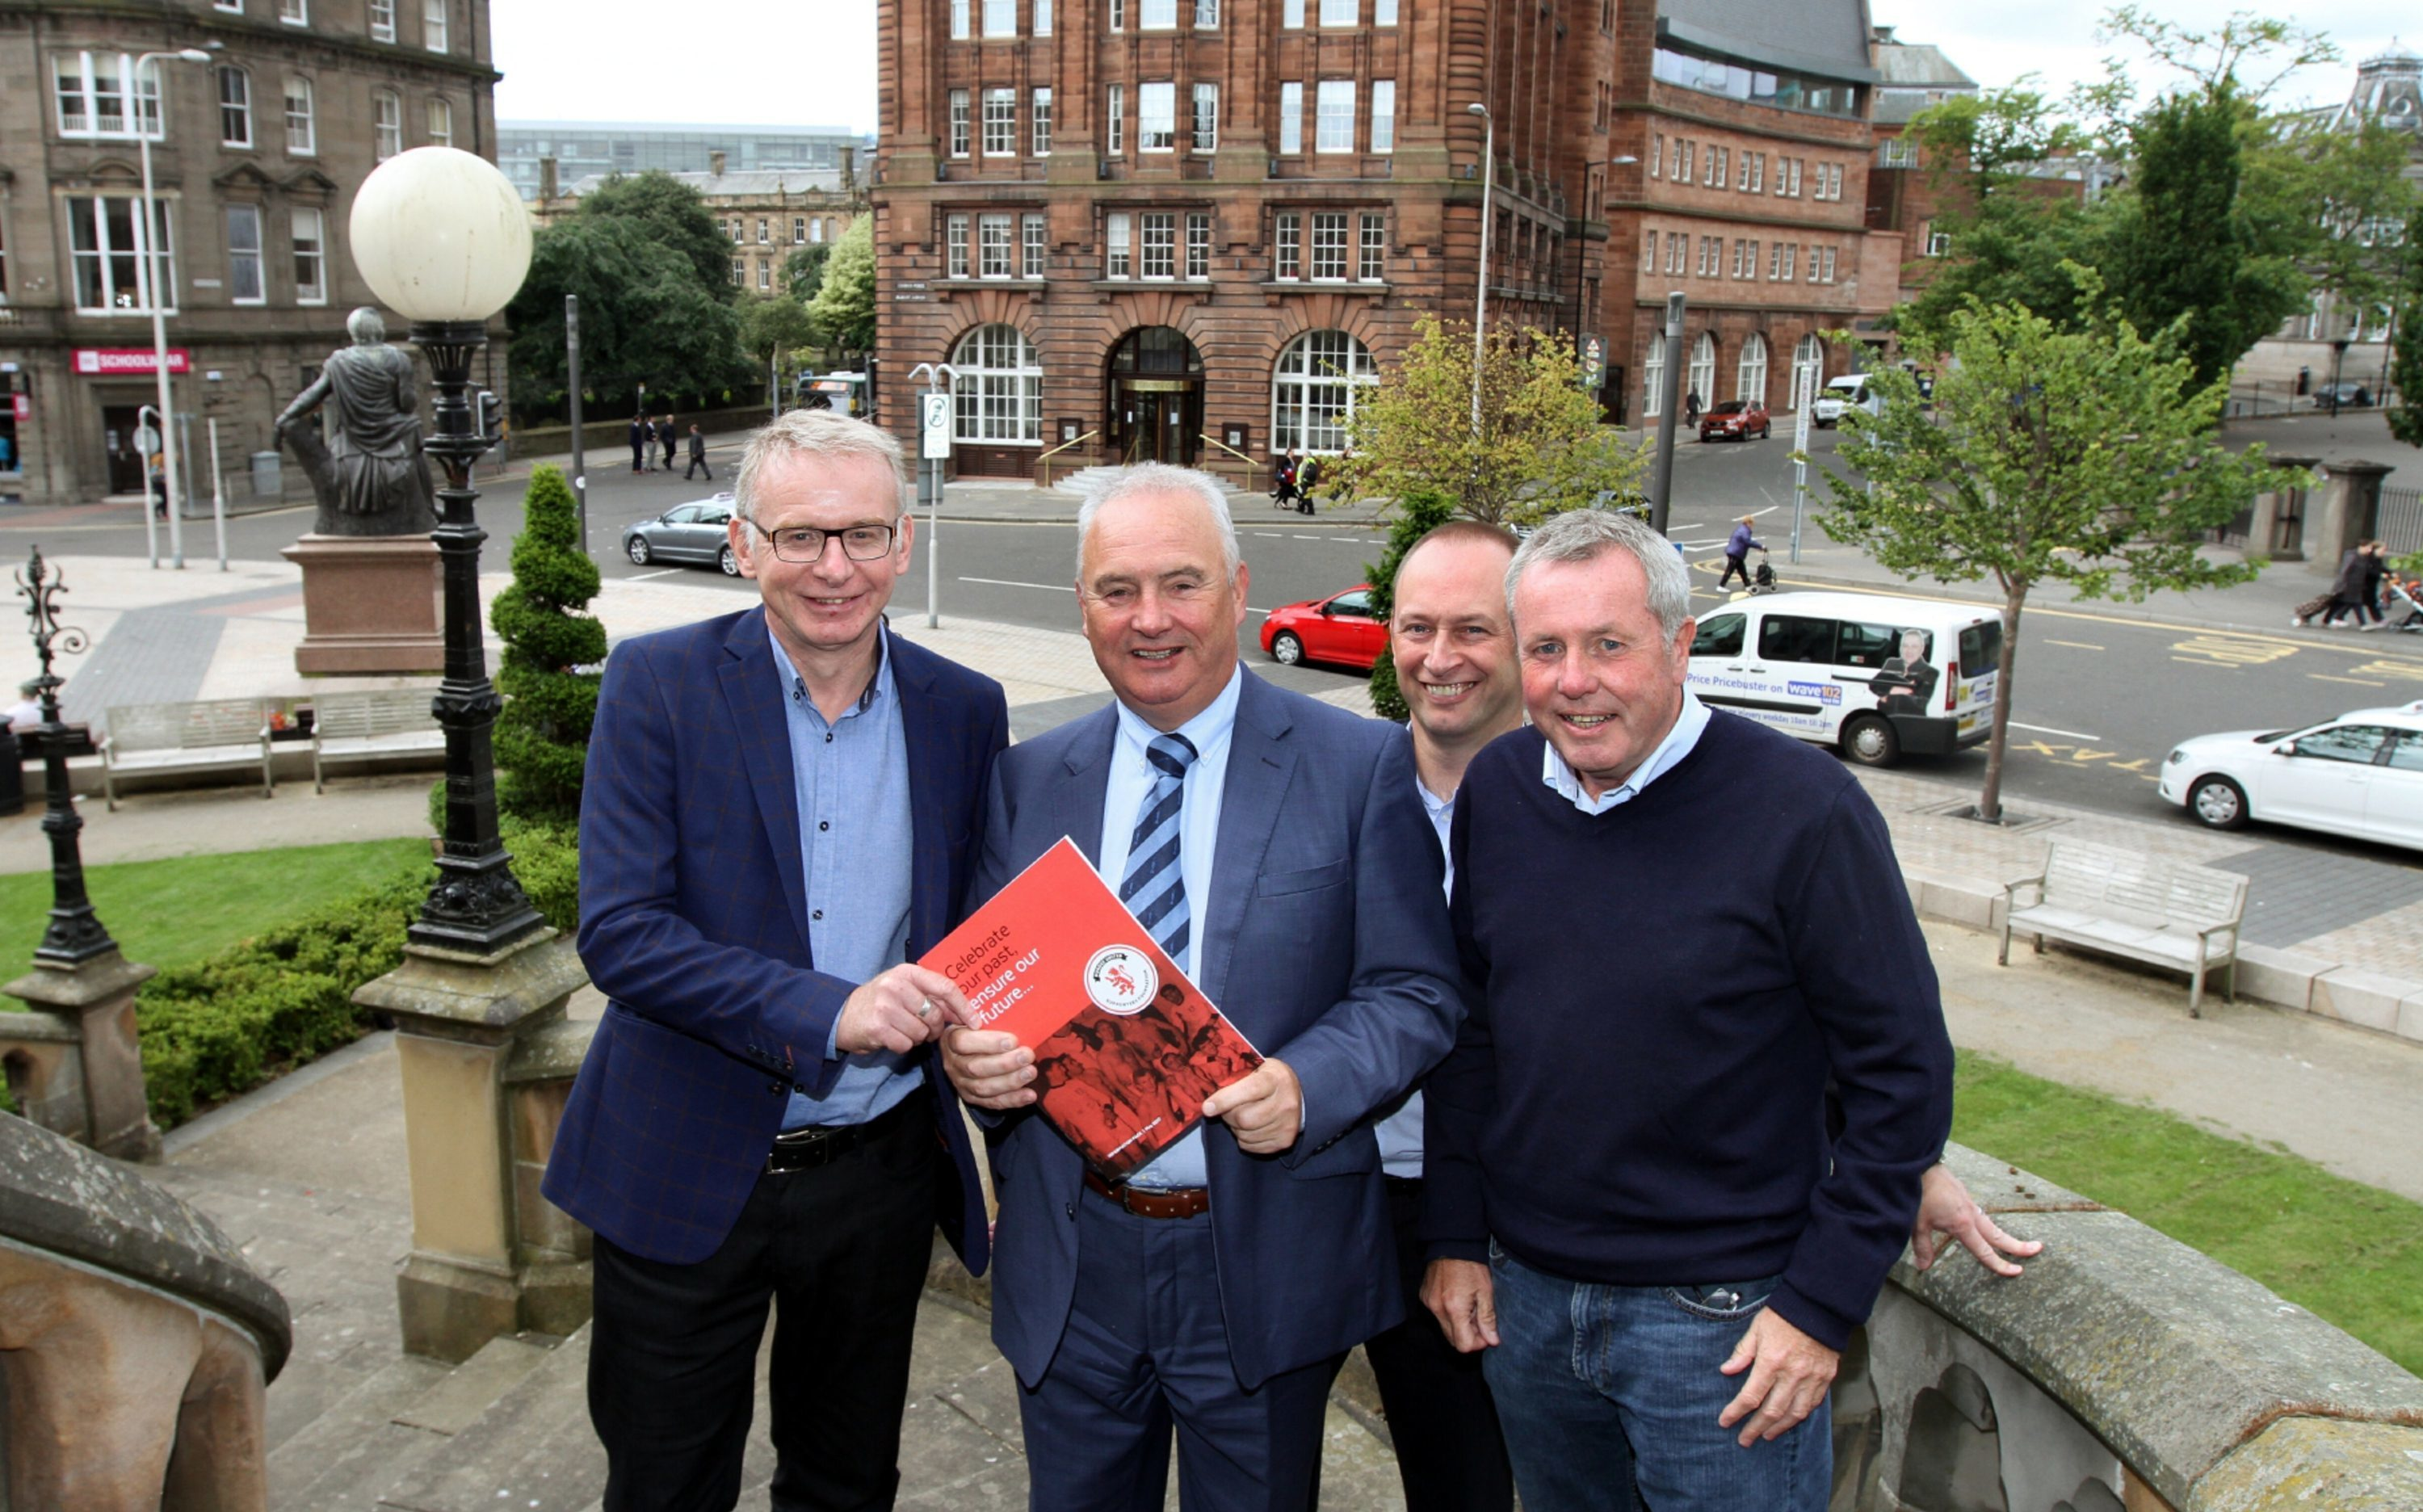 Martin Manzi with fellow steering group members John Gibson, Graham McLelland and Mike Evans.